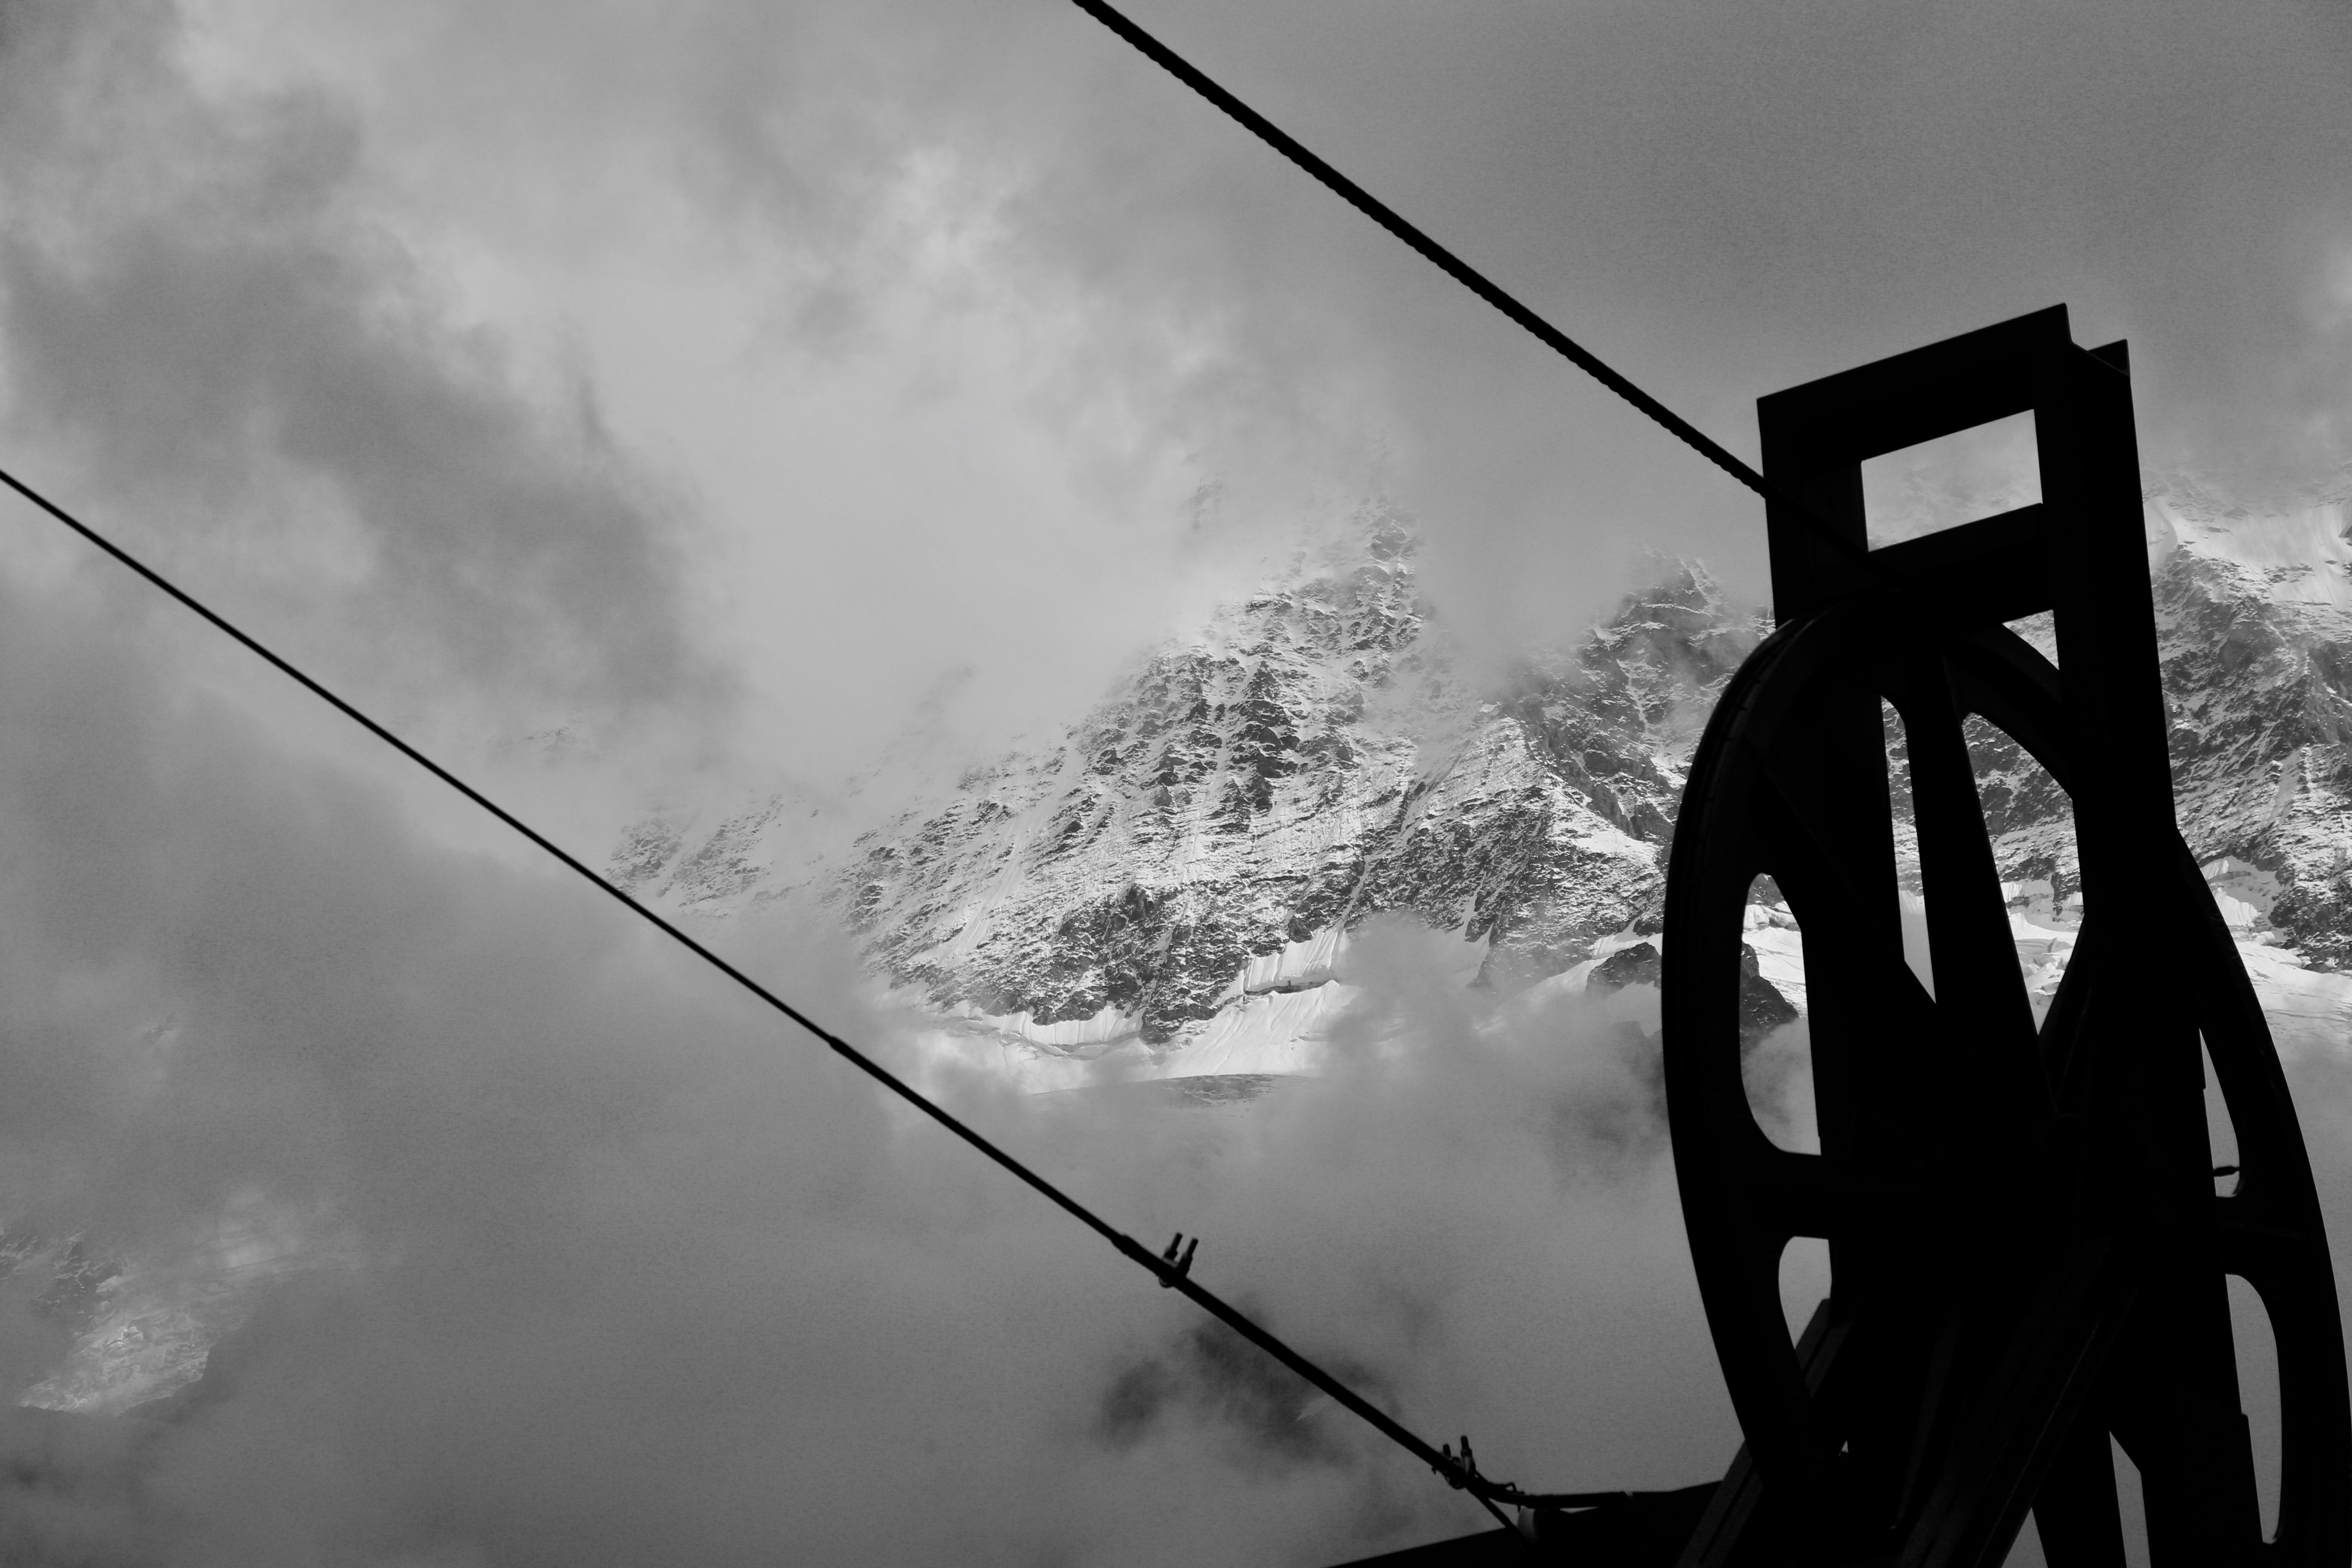 Grayscale Photography of Pulley Near Mountain